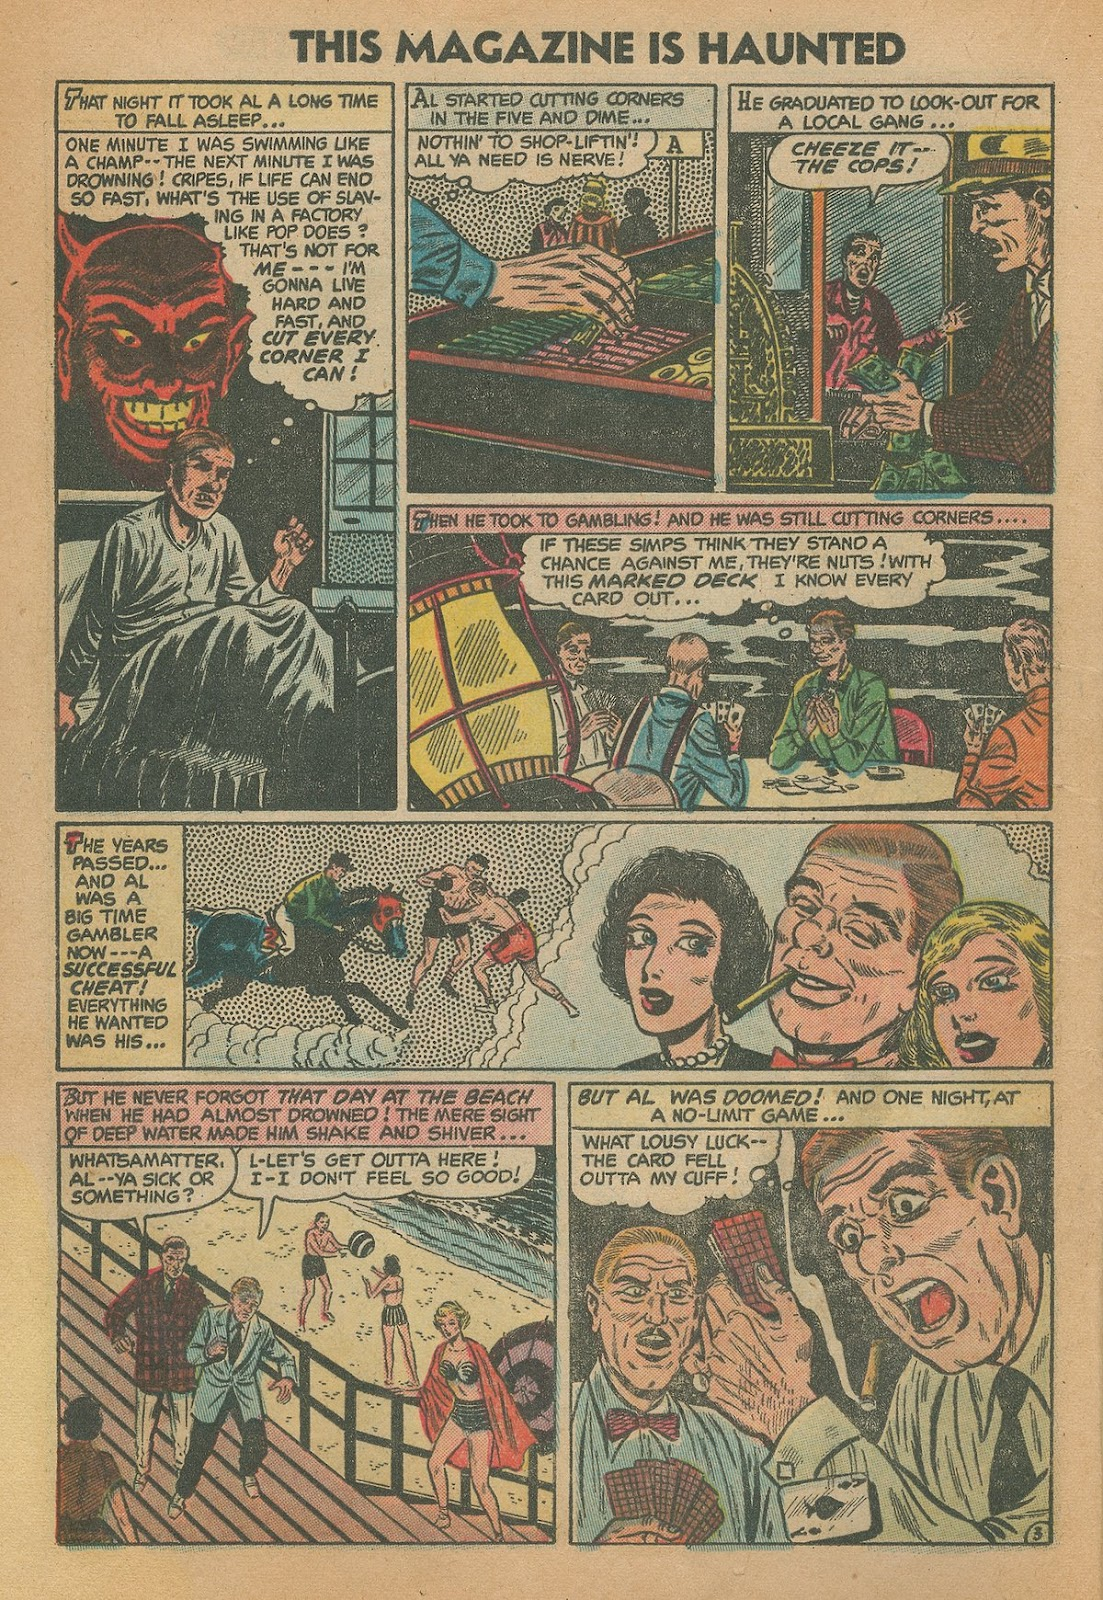 Read online This Magazine Is Haunted comic -  Issue #19 - 20